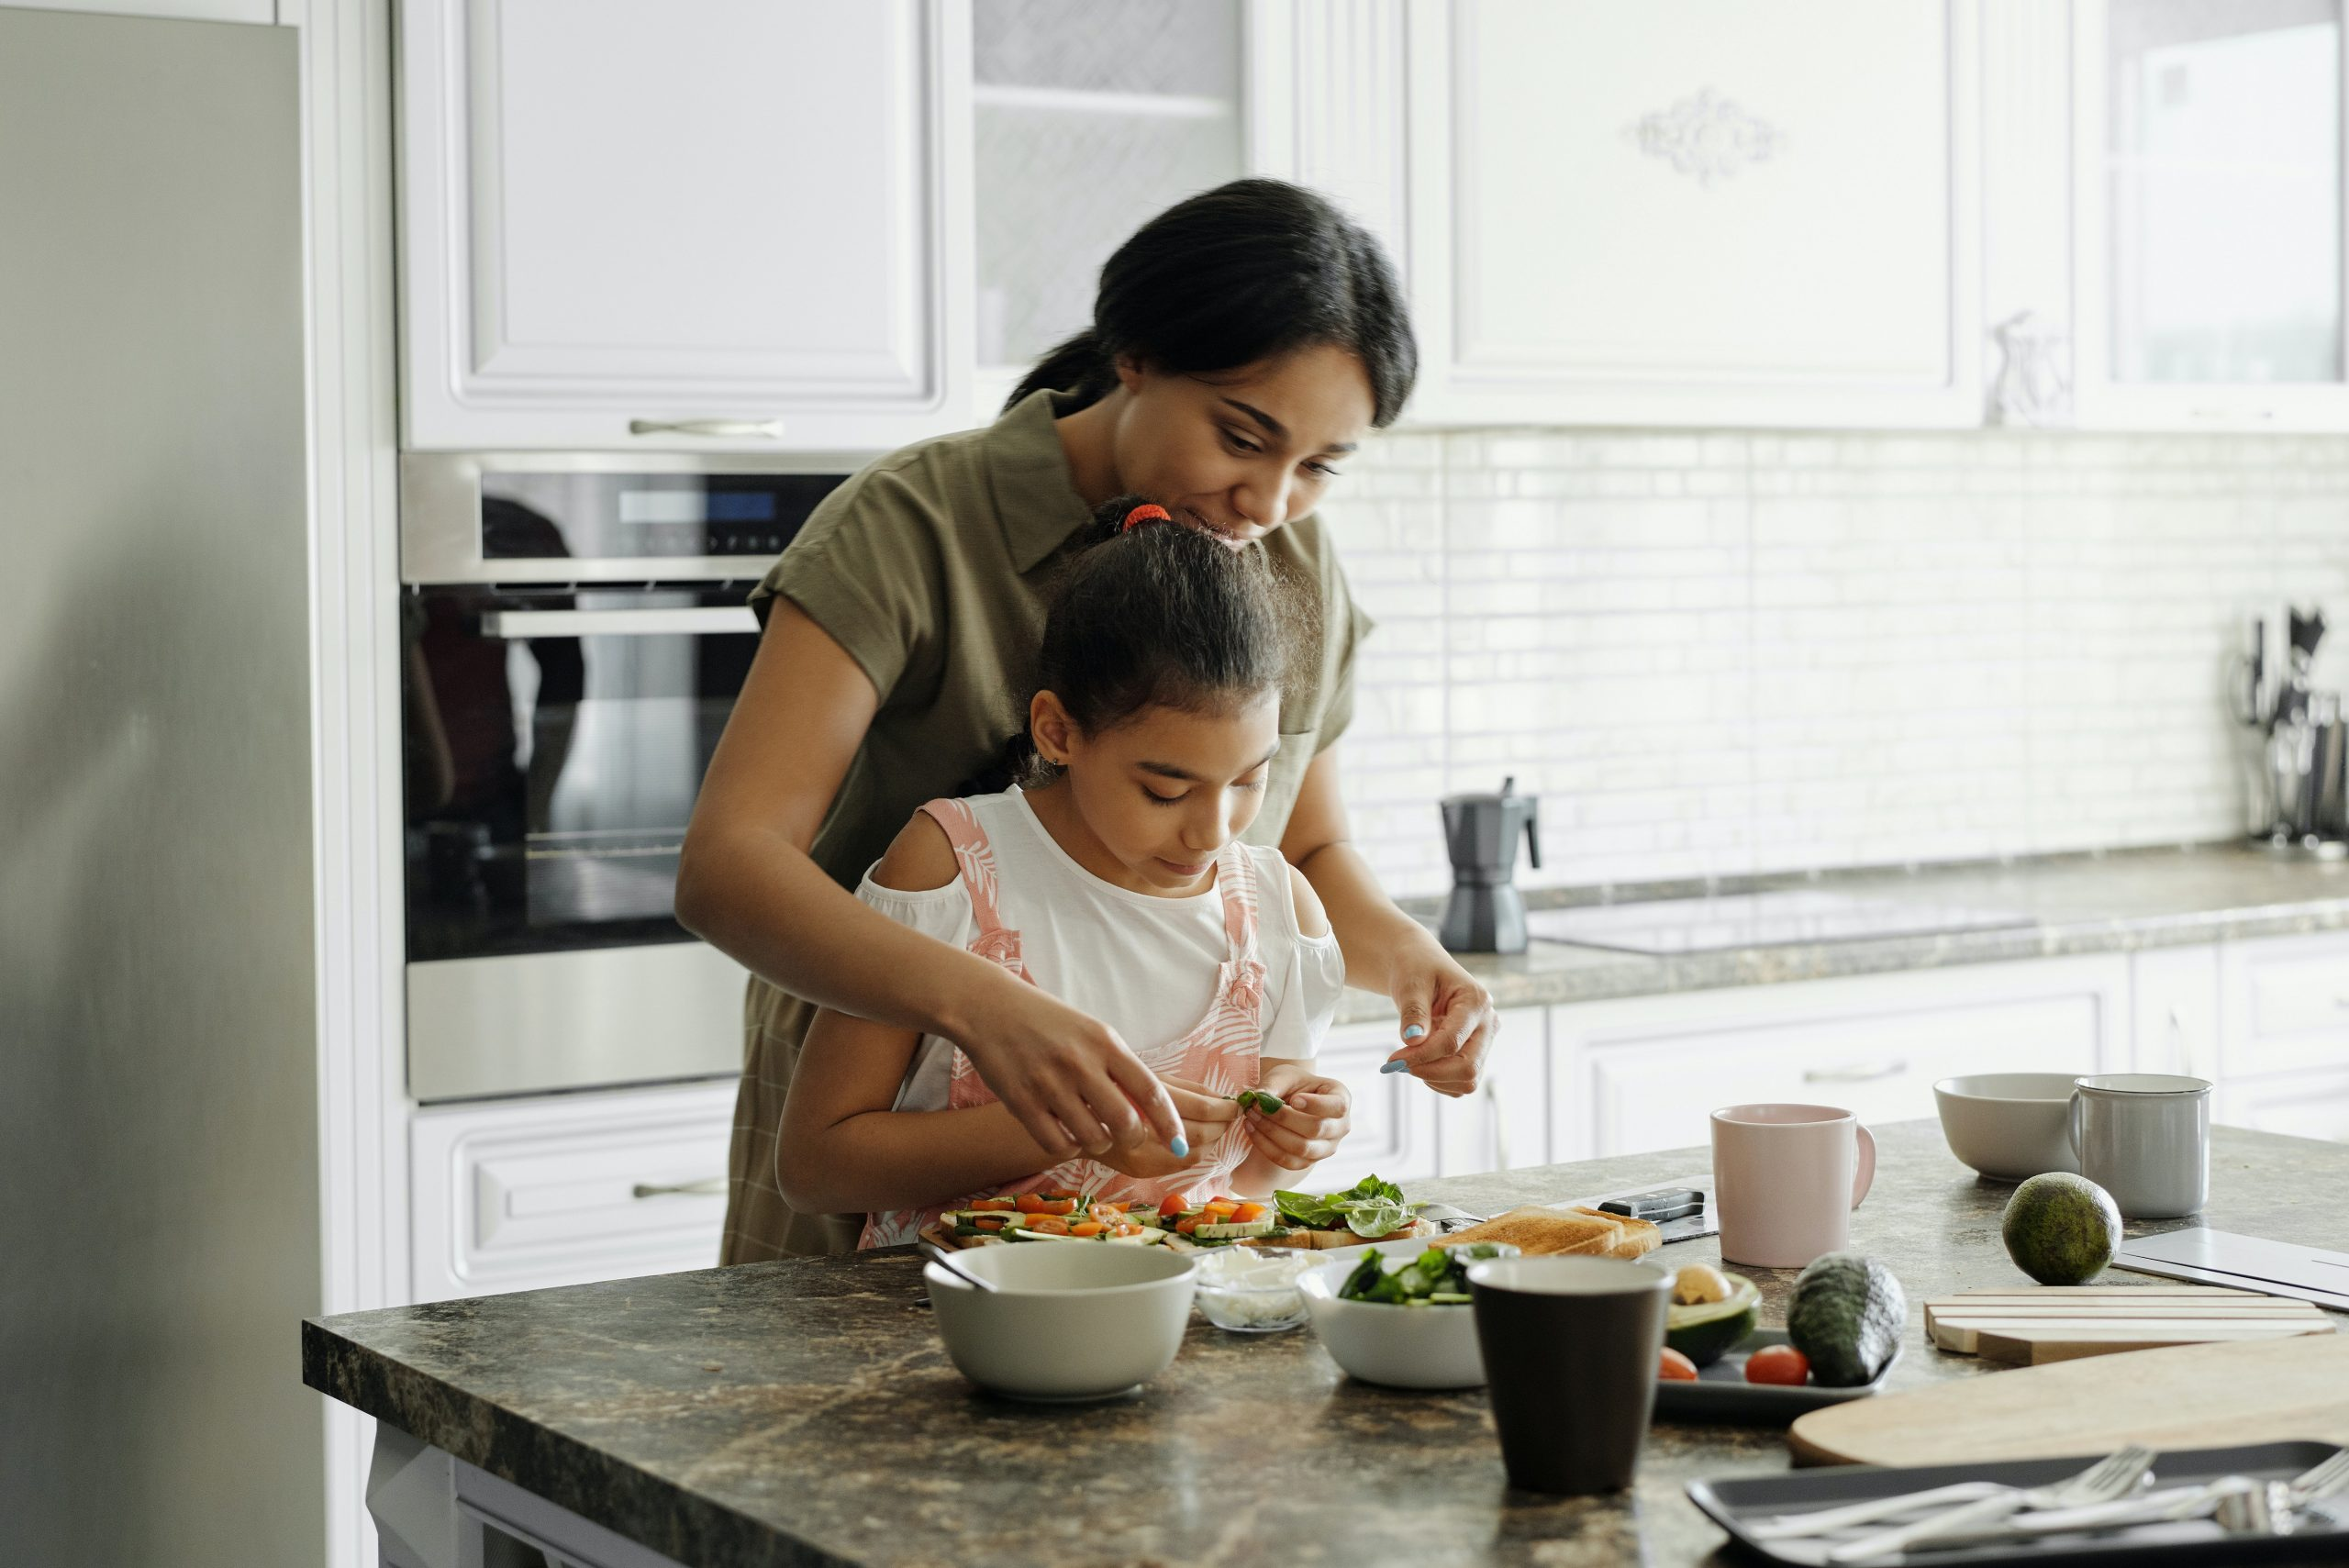 Photo of mother and child preparing food